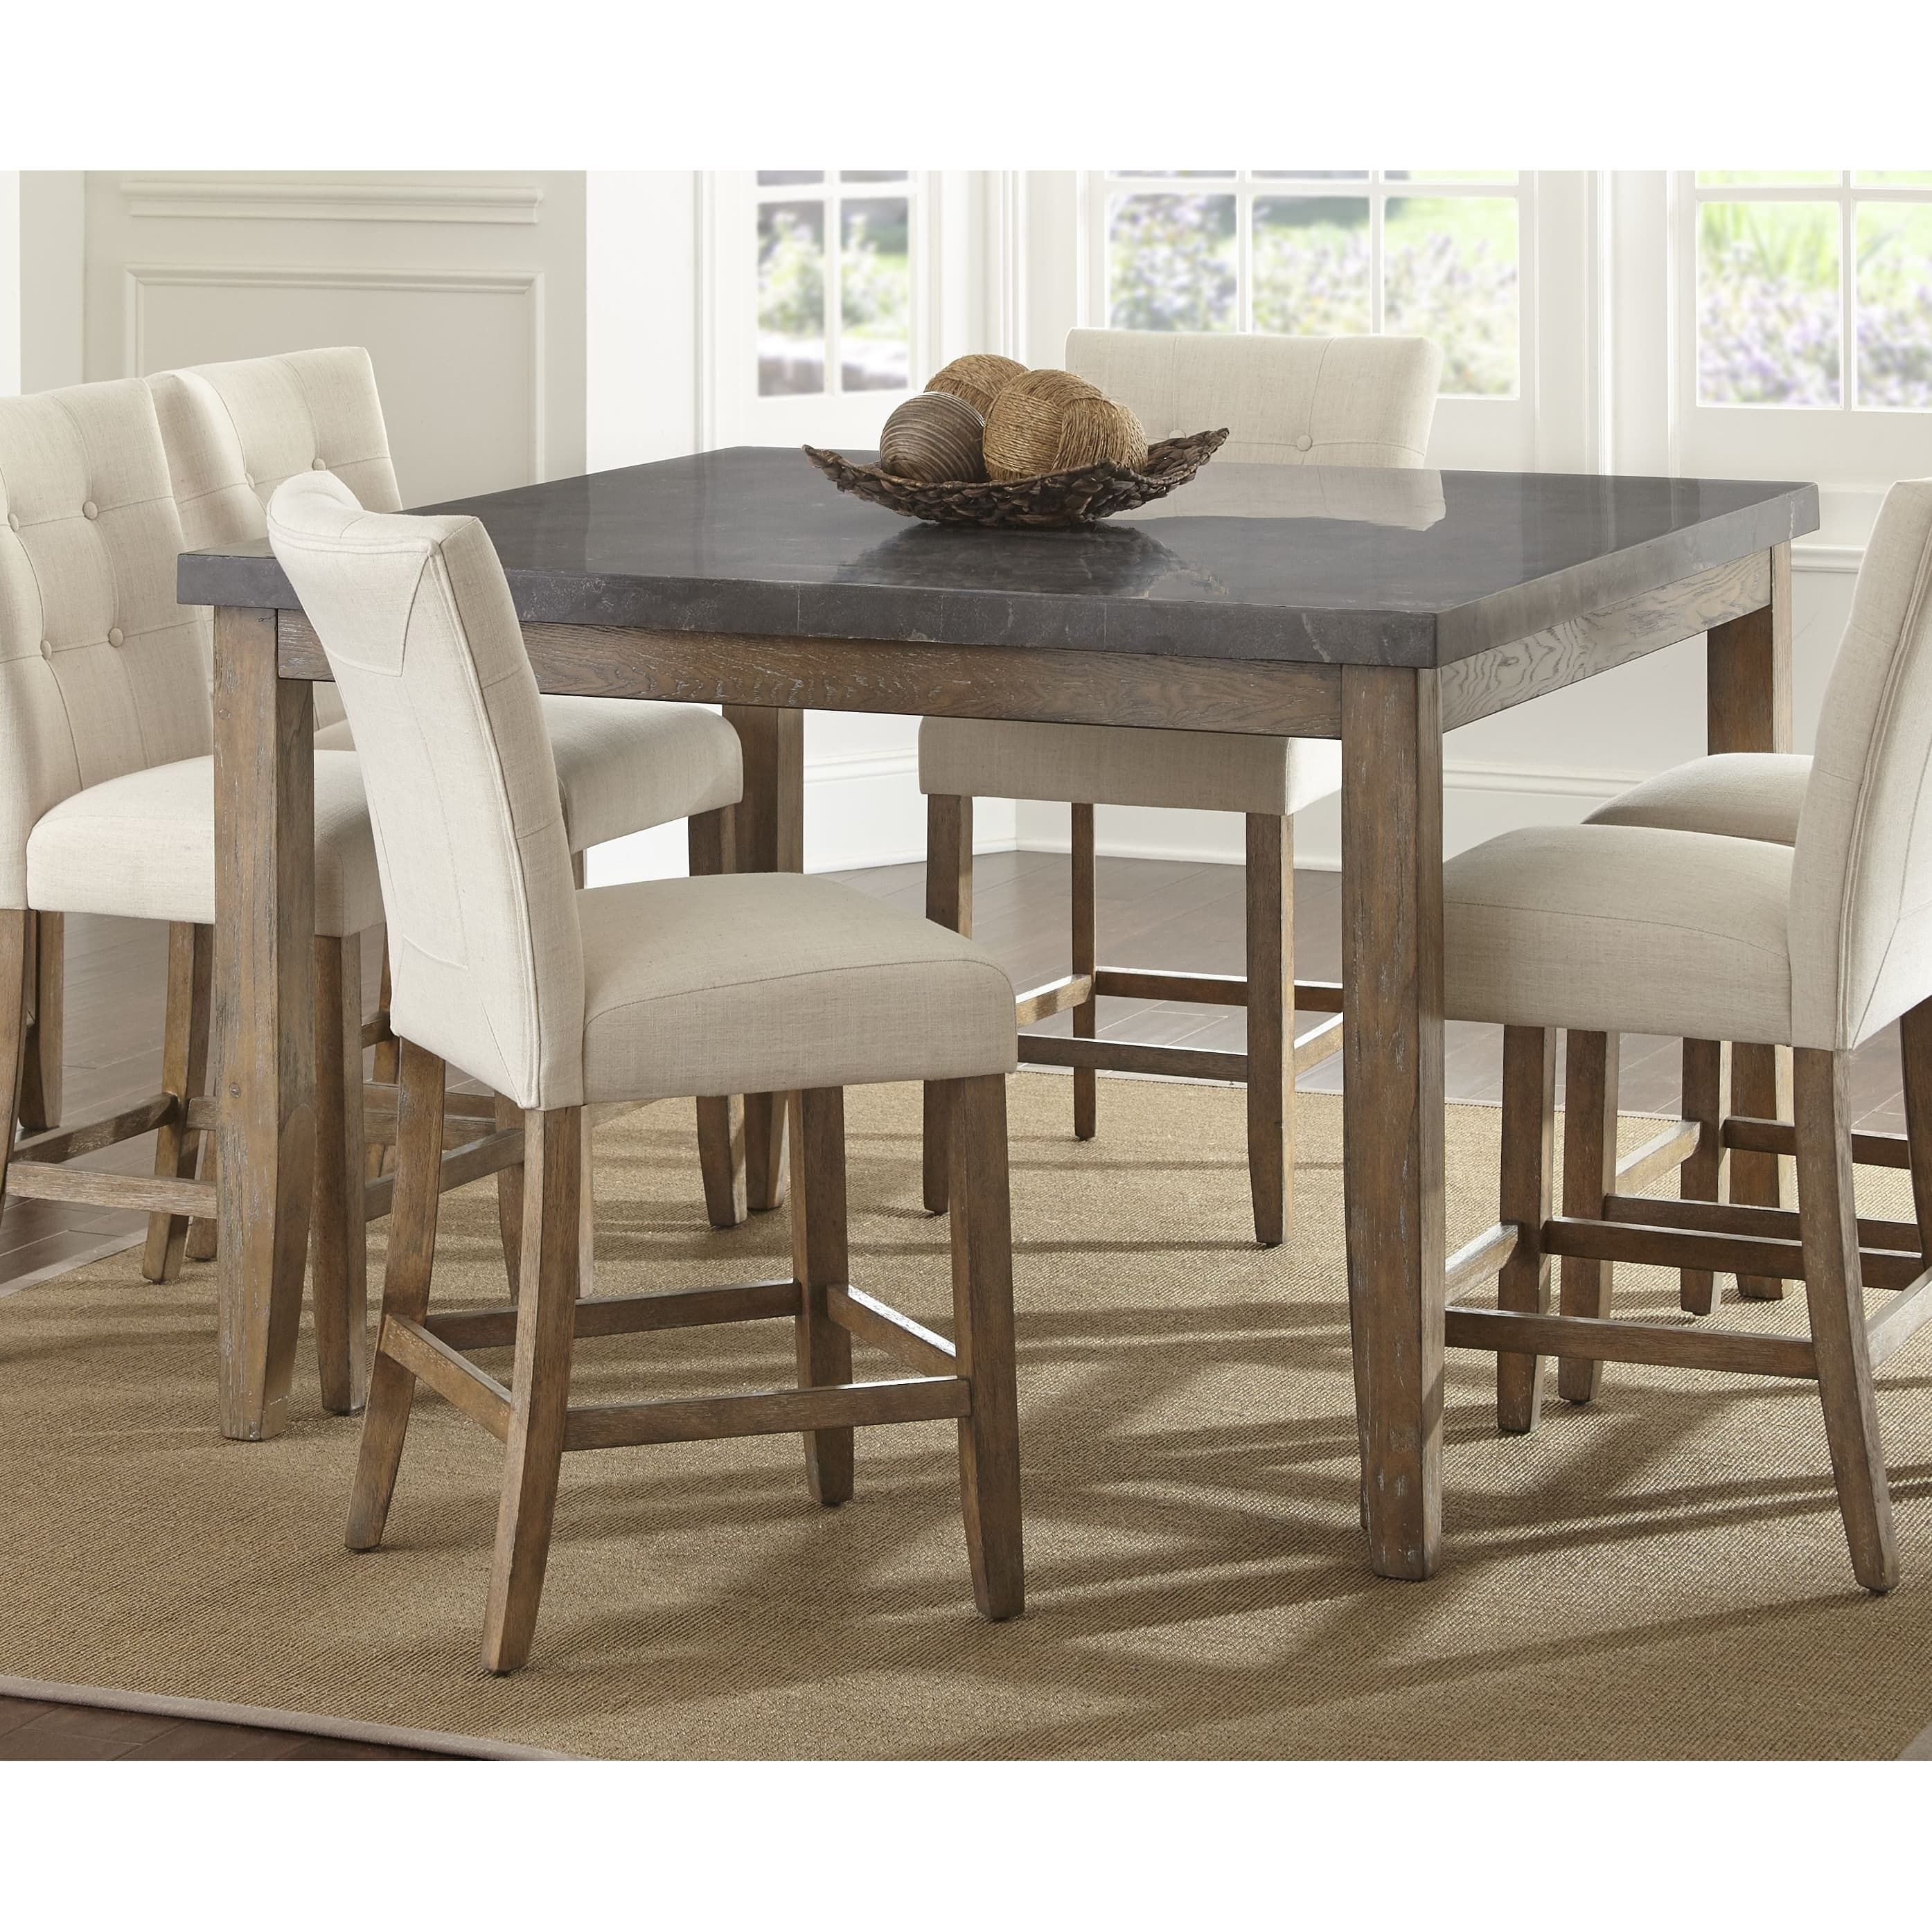 Danni 54 Inch Square Counter Height Dining Table With Stone Top By